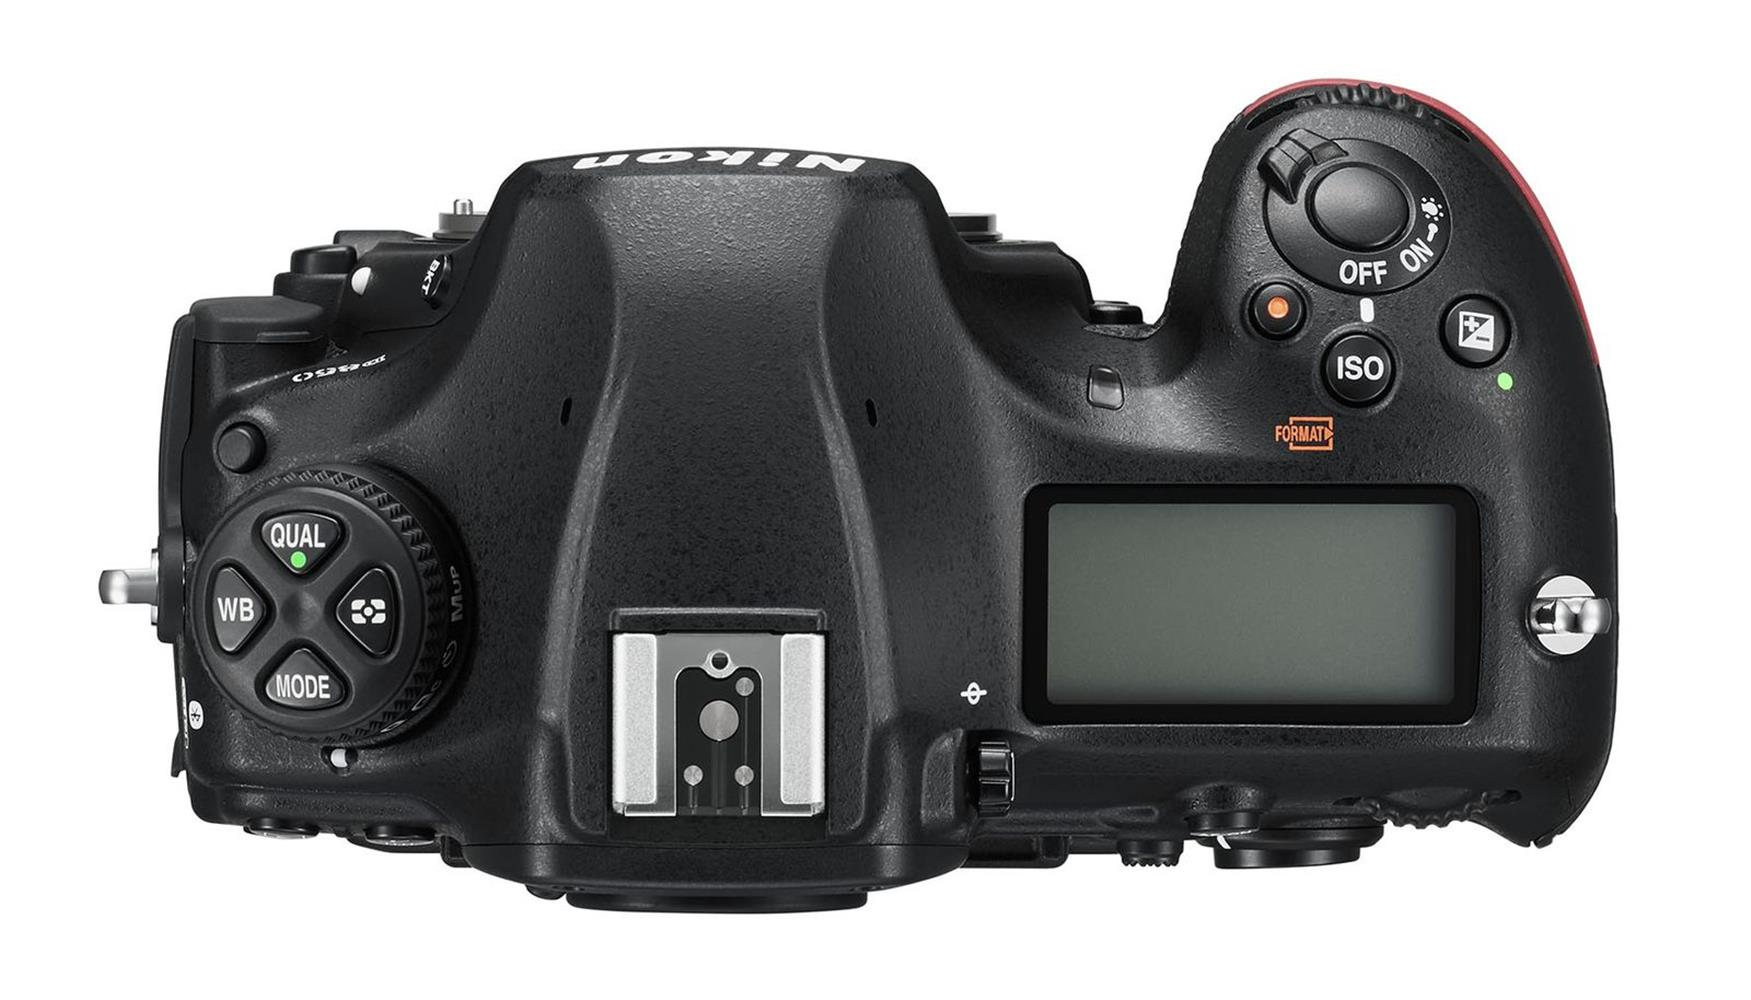 Nikon D850 D Slr Body Wont Be Beat On Price D810 Only Photos For Illustrative Purposes